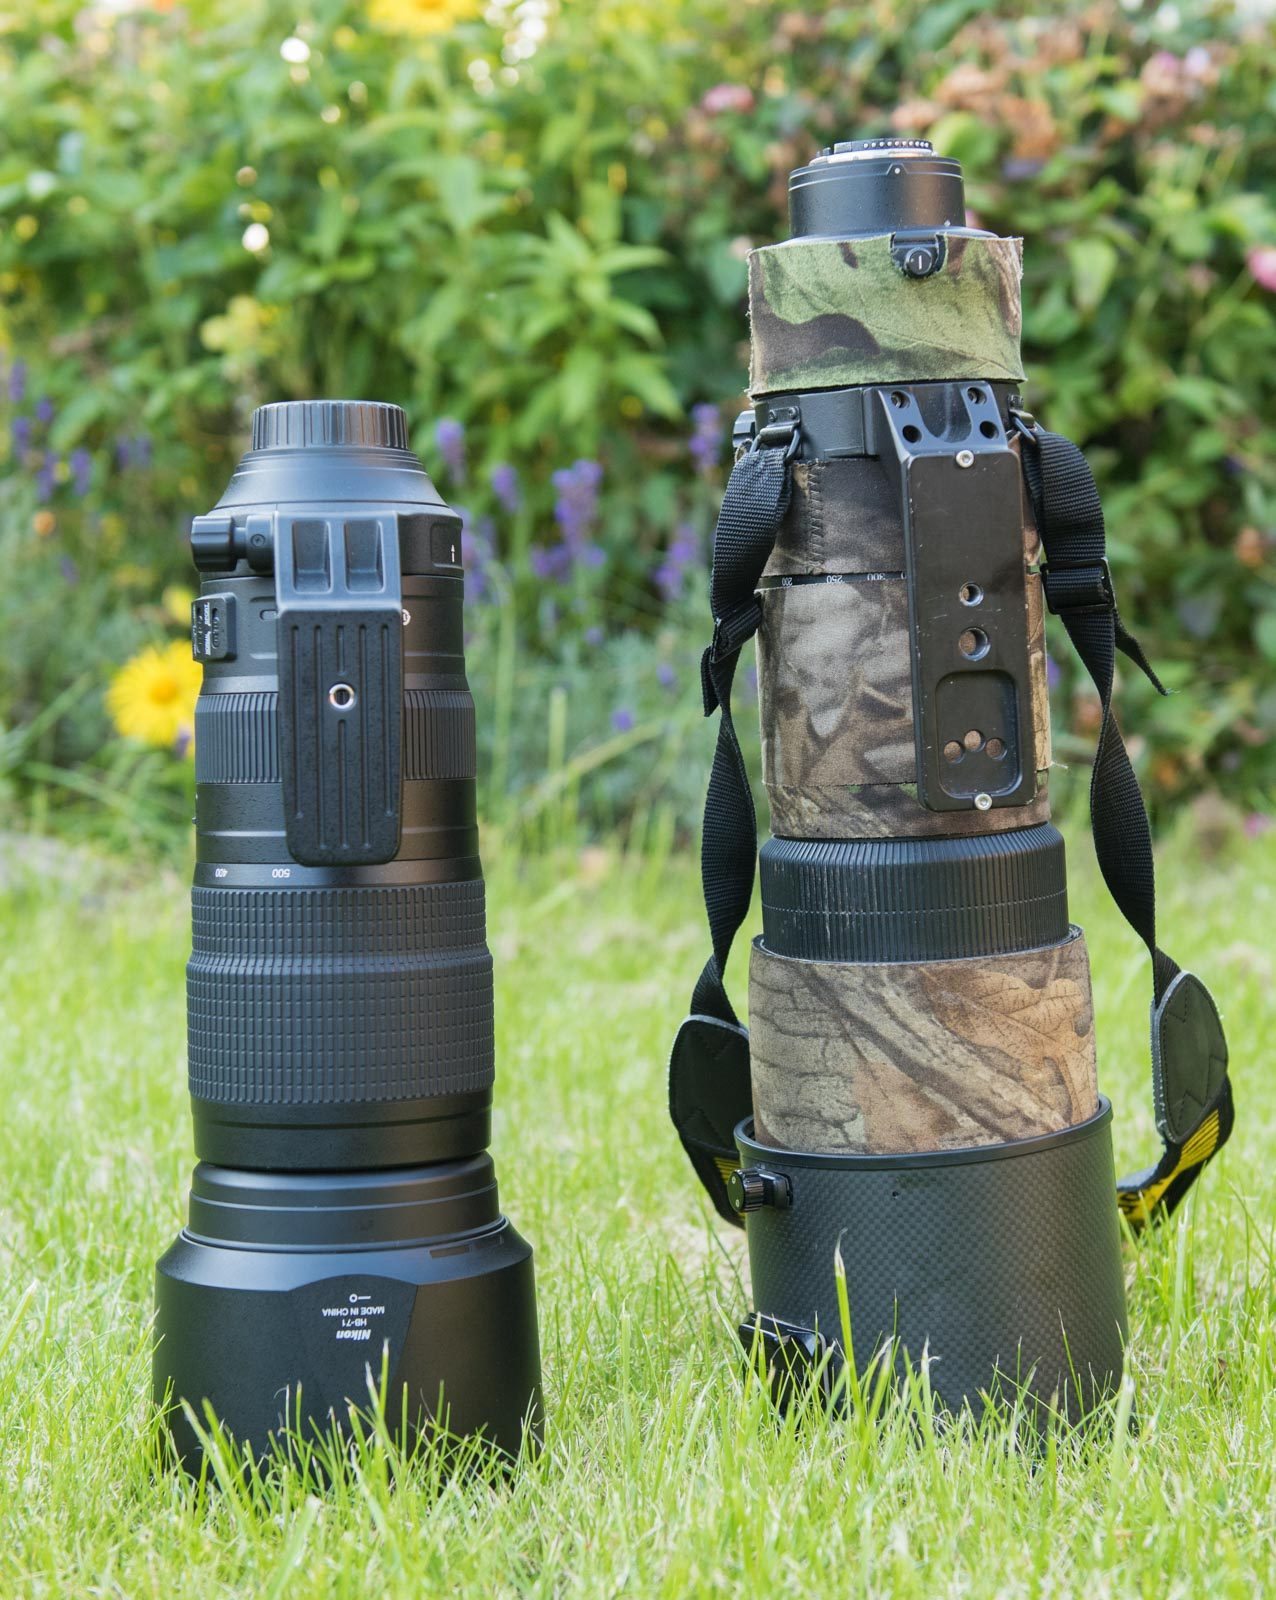 nikon 200-500mm review wildlife